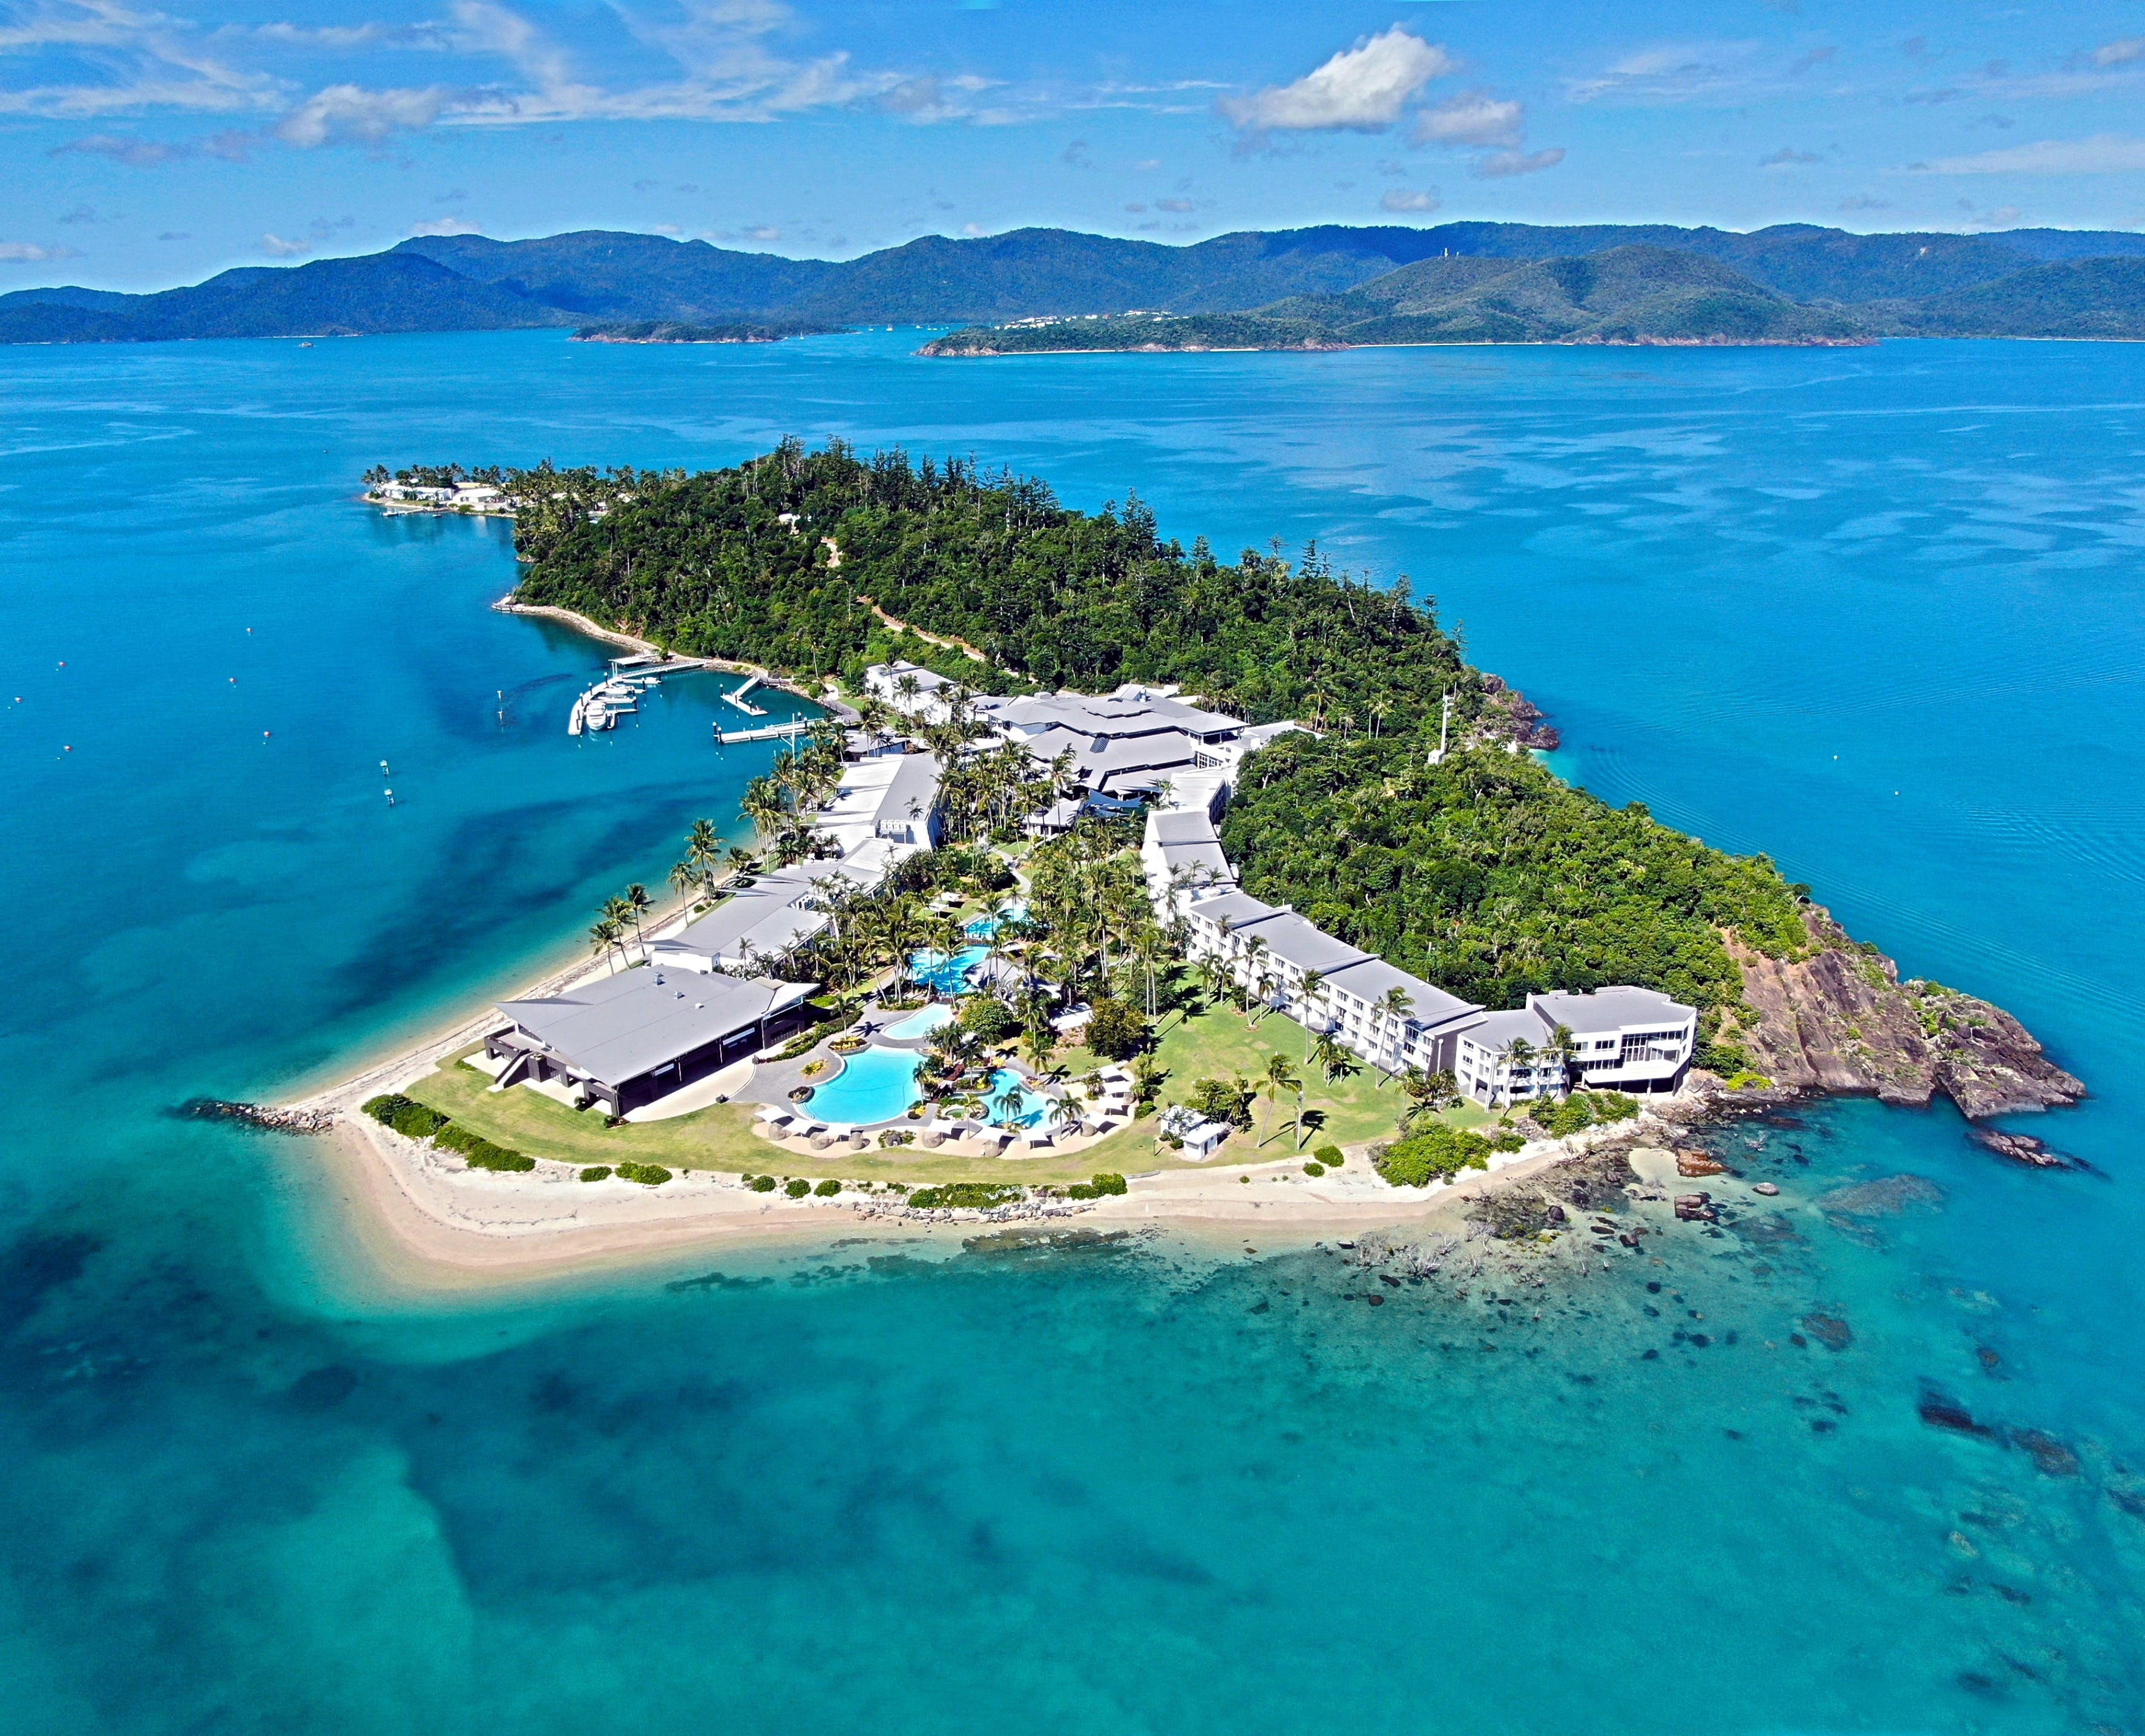 Daydream Island Resort and Living Reef - Townsville Tourism